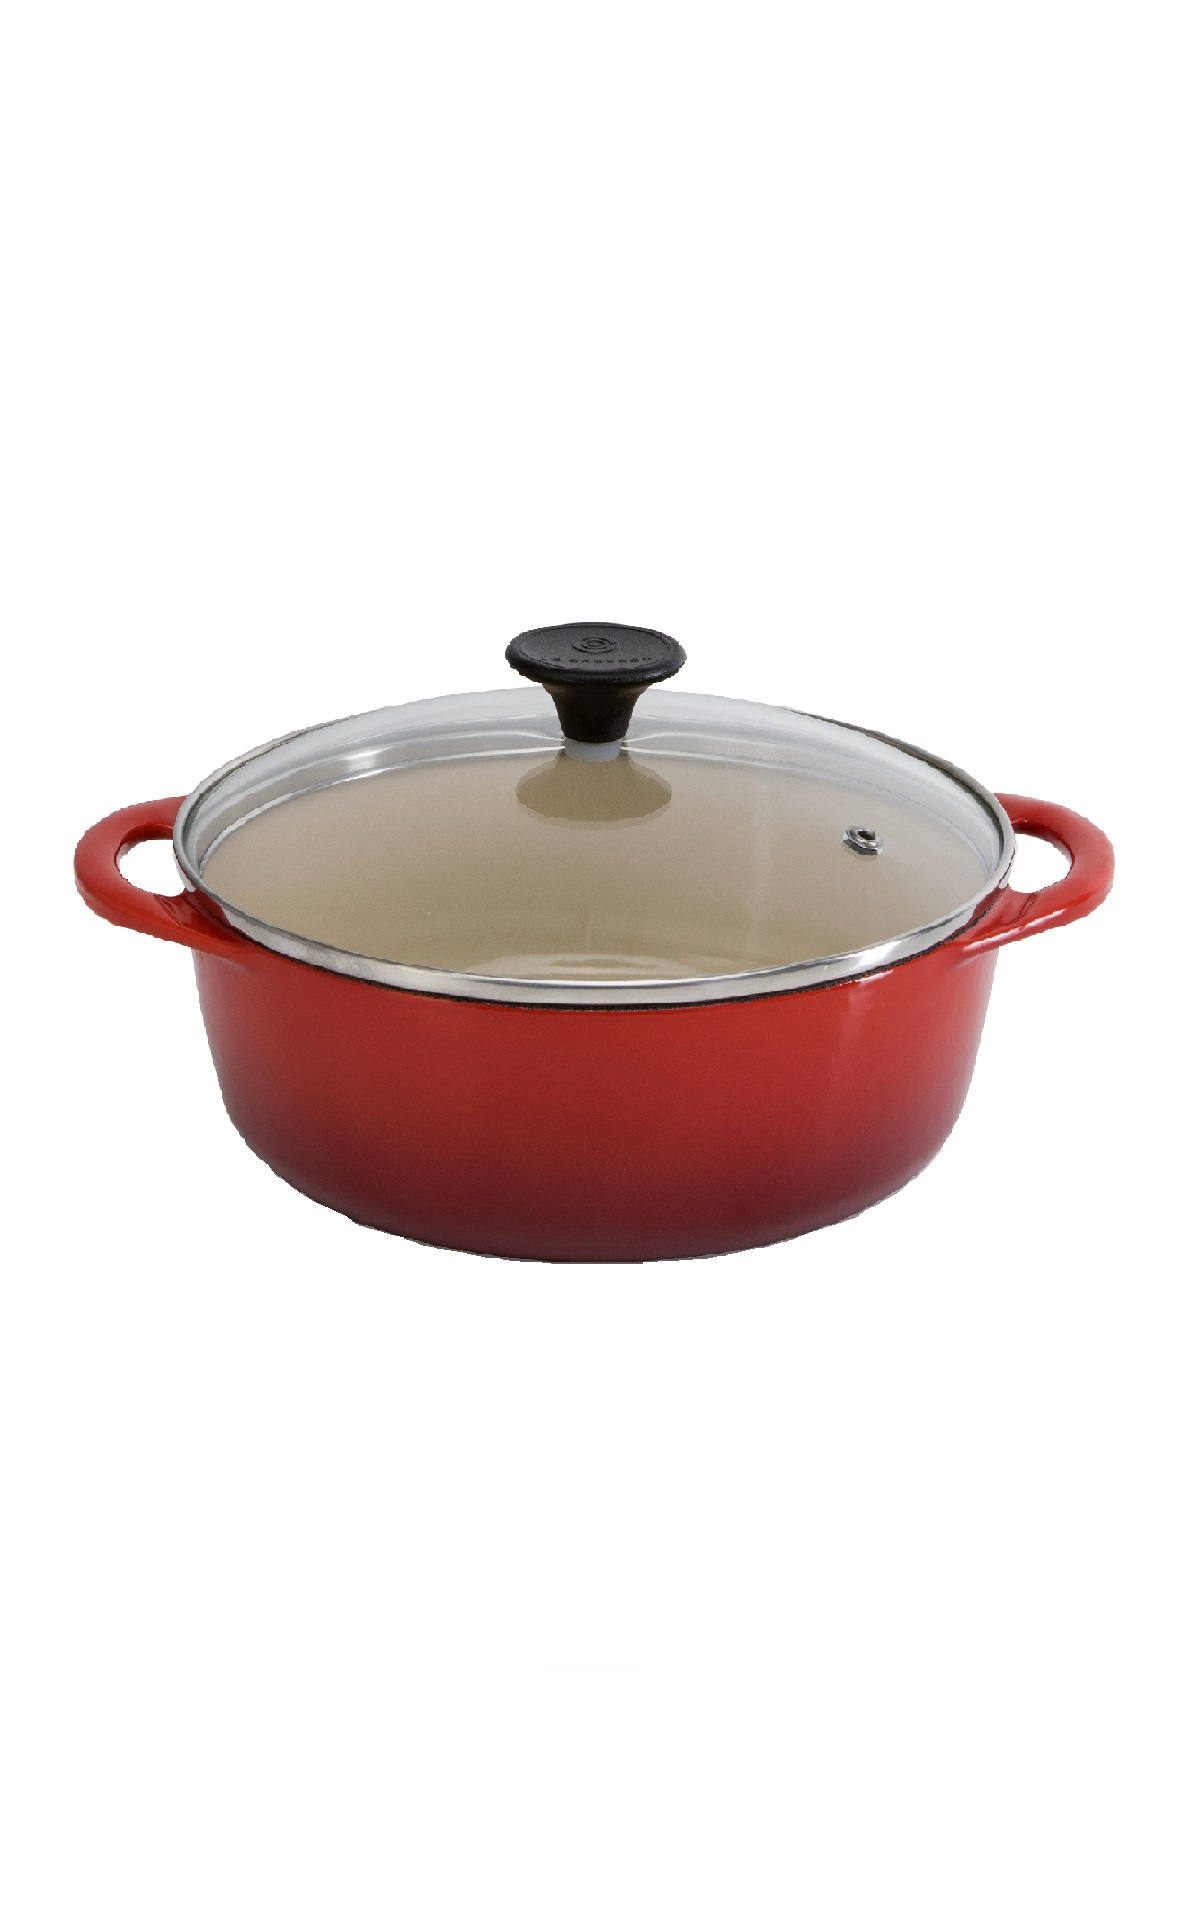 Cocotte with glass top Le Creuset